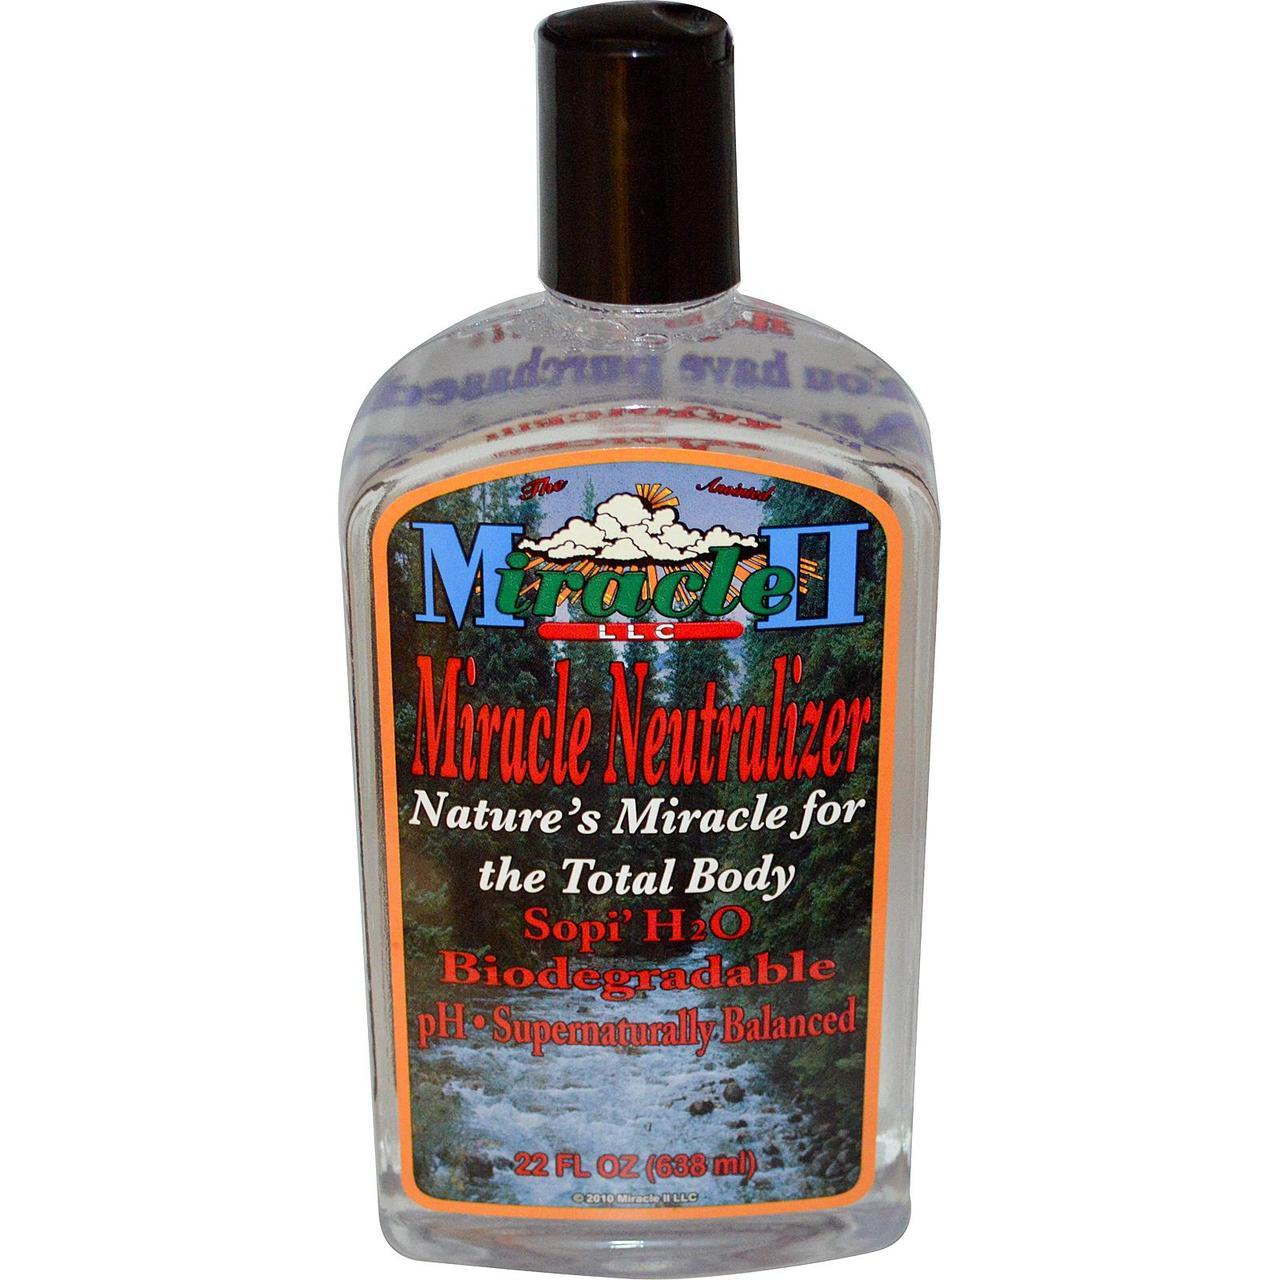 miracle 11 neutralizer gel how to use on fungus nails photo - 1